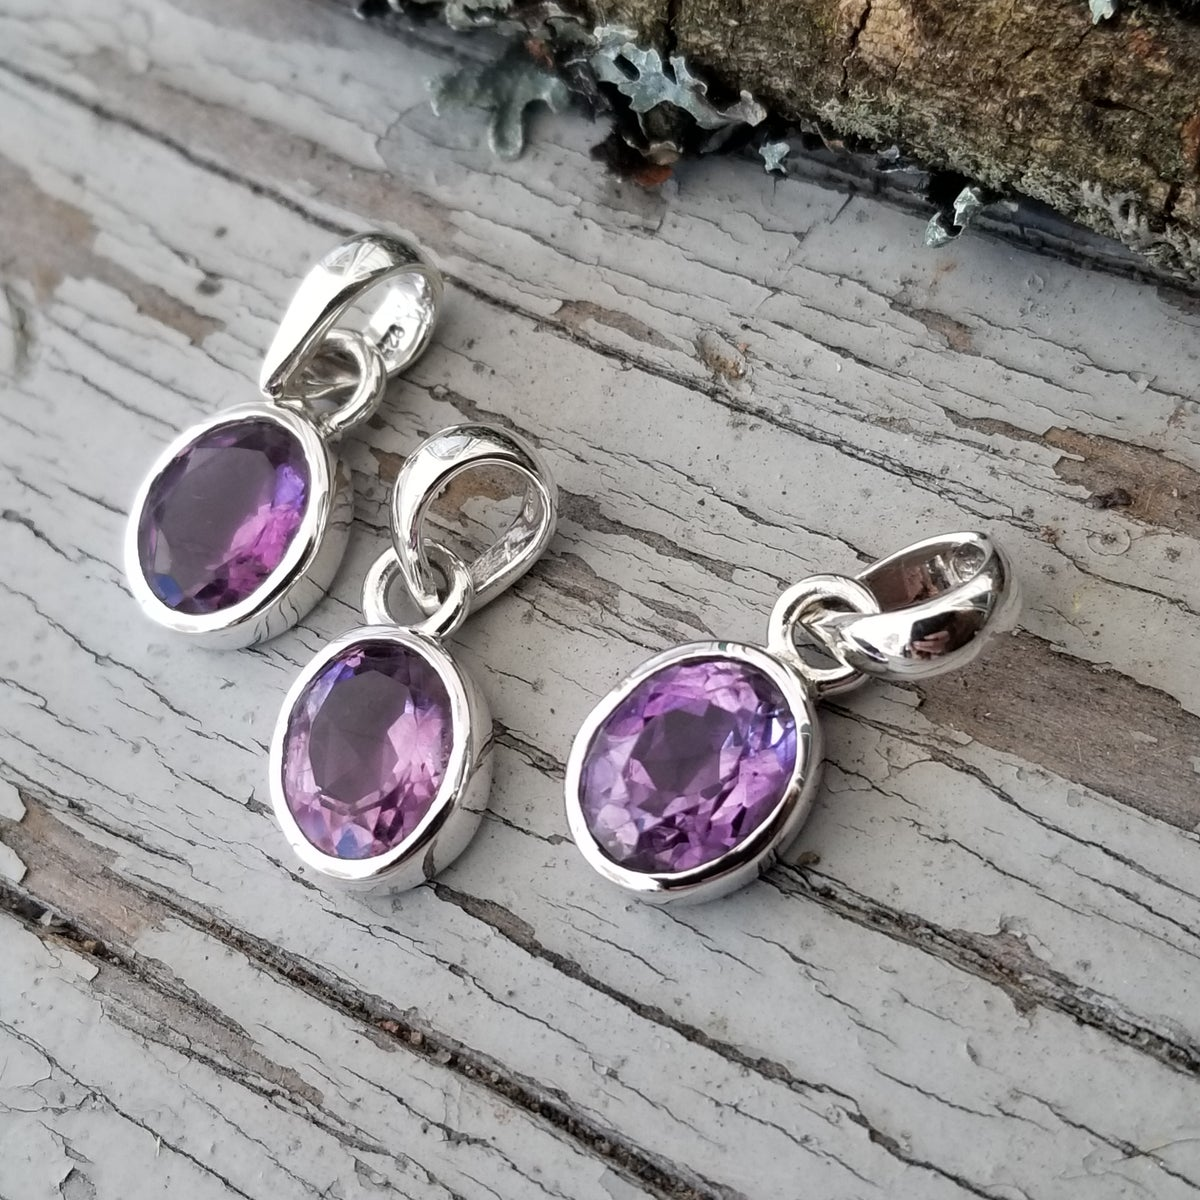 Image of Classic Faceted Pendants - Amethyst in Sterling